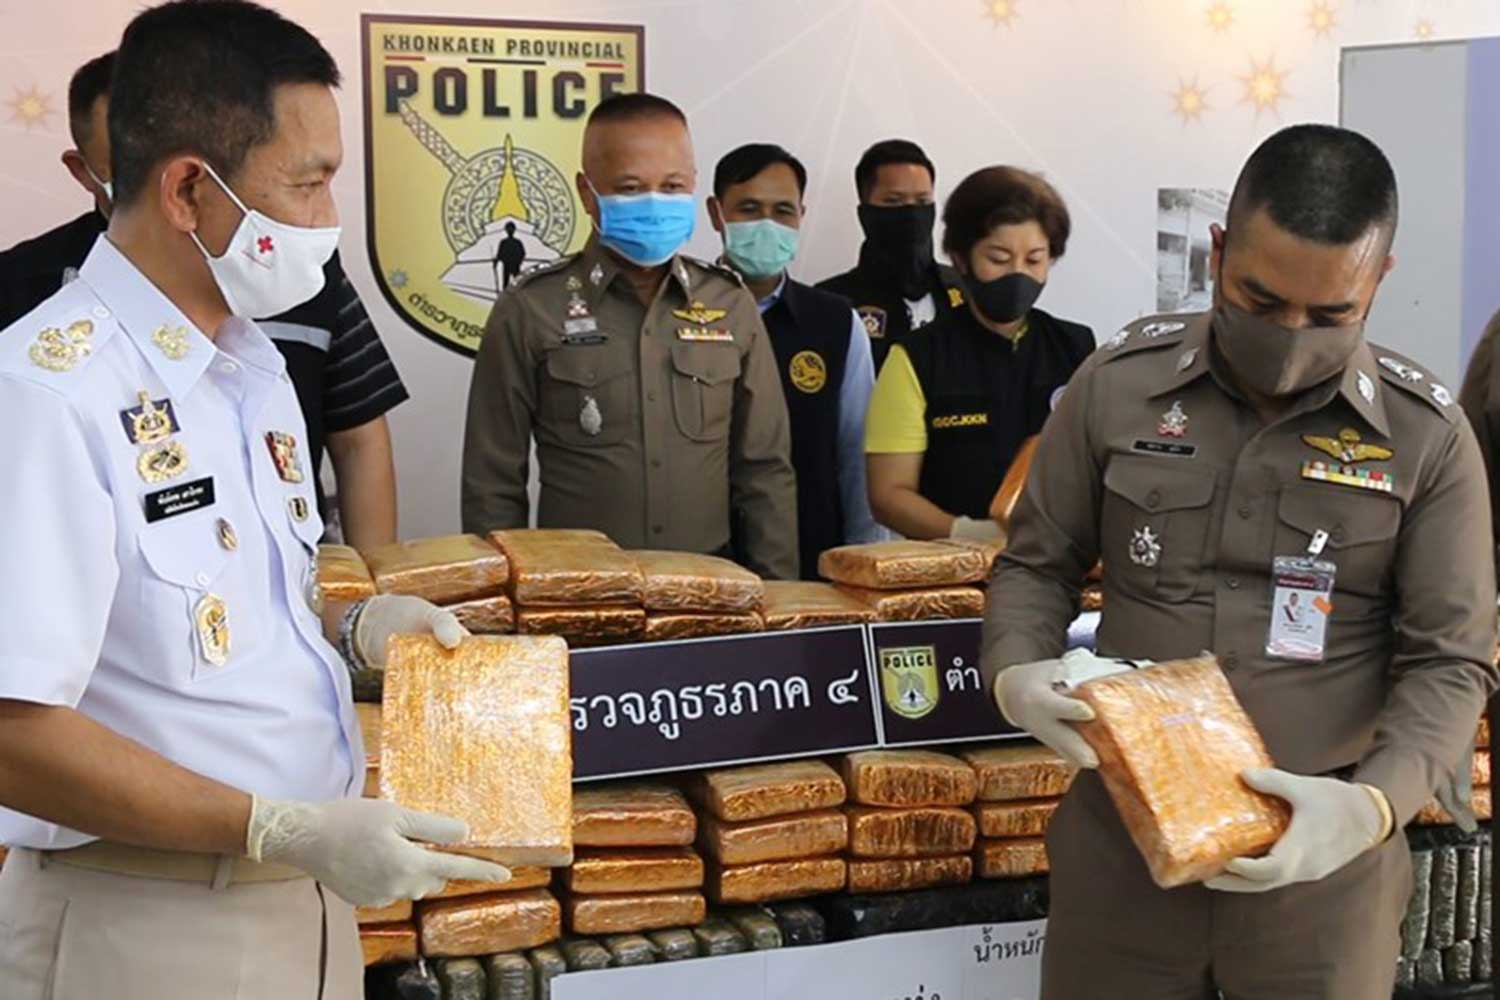 Police examine the seized marijuana during a media briefing in Khon Kaen on Thursday. (Photo: Chakrapan Nathanri)